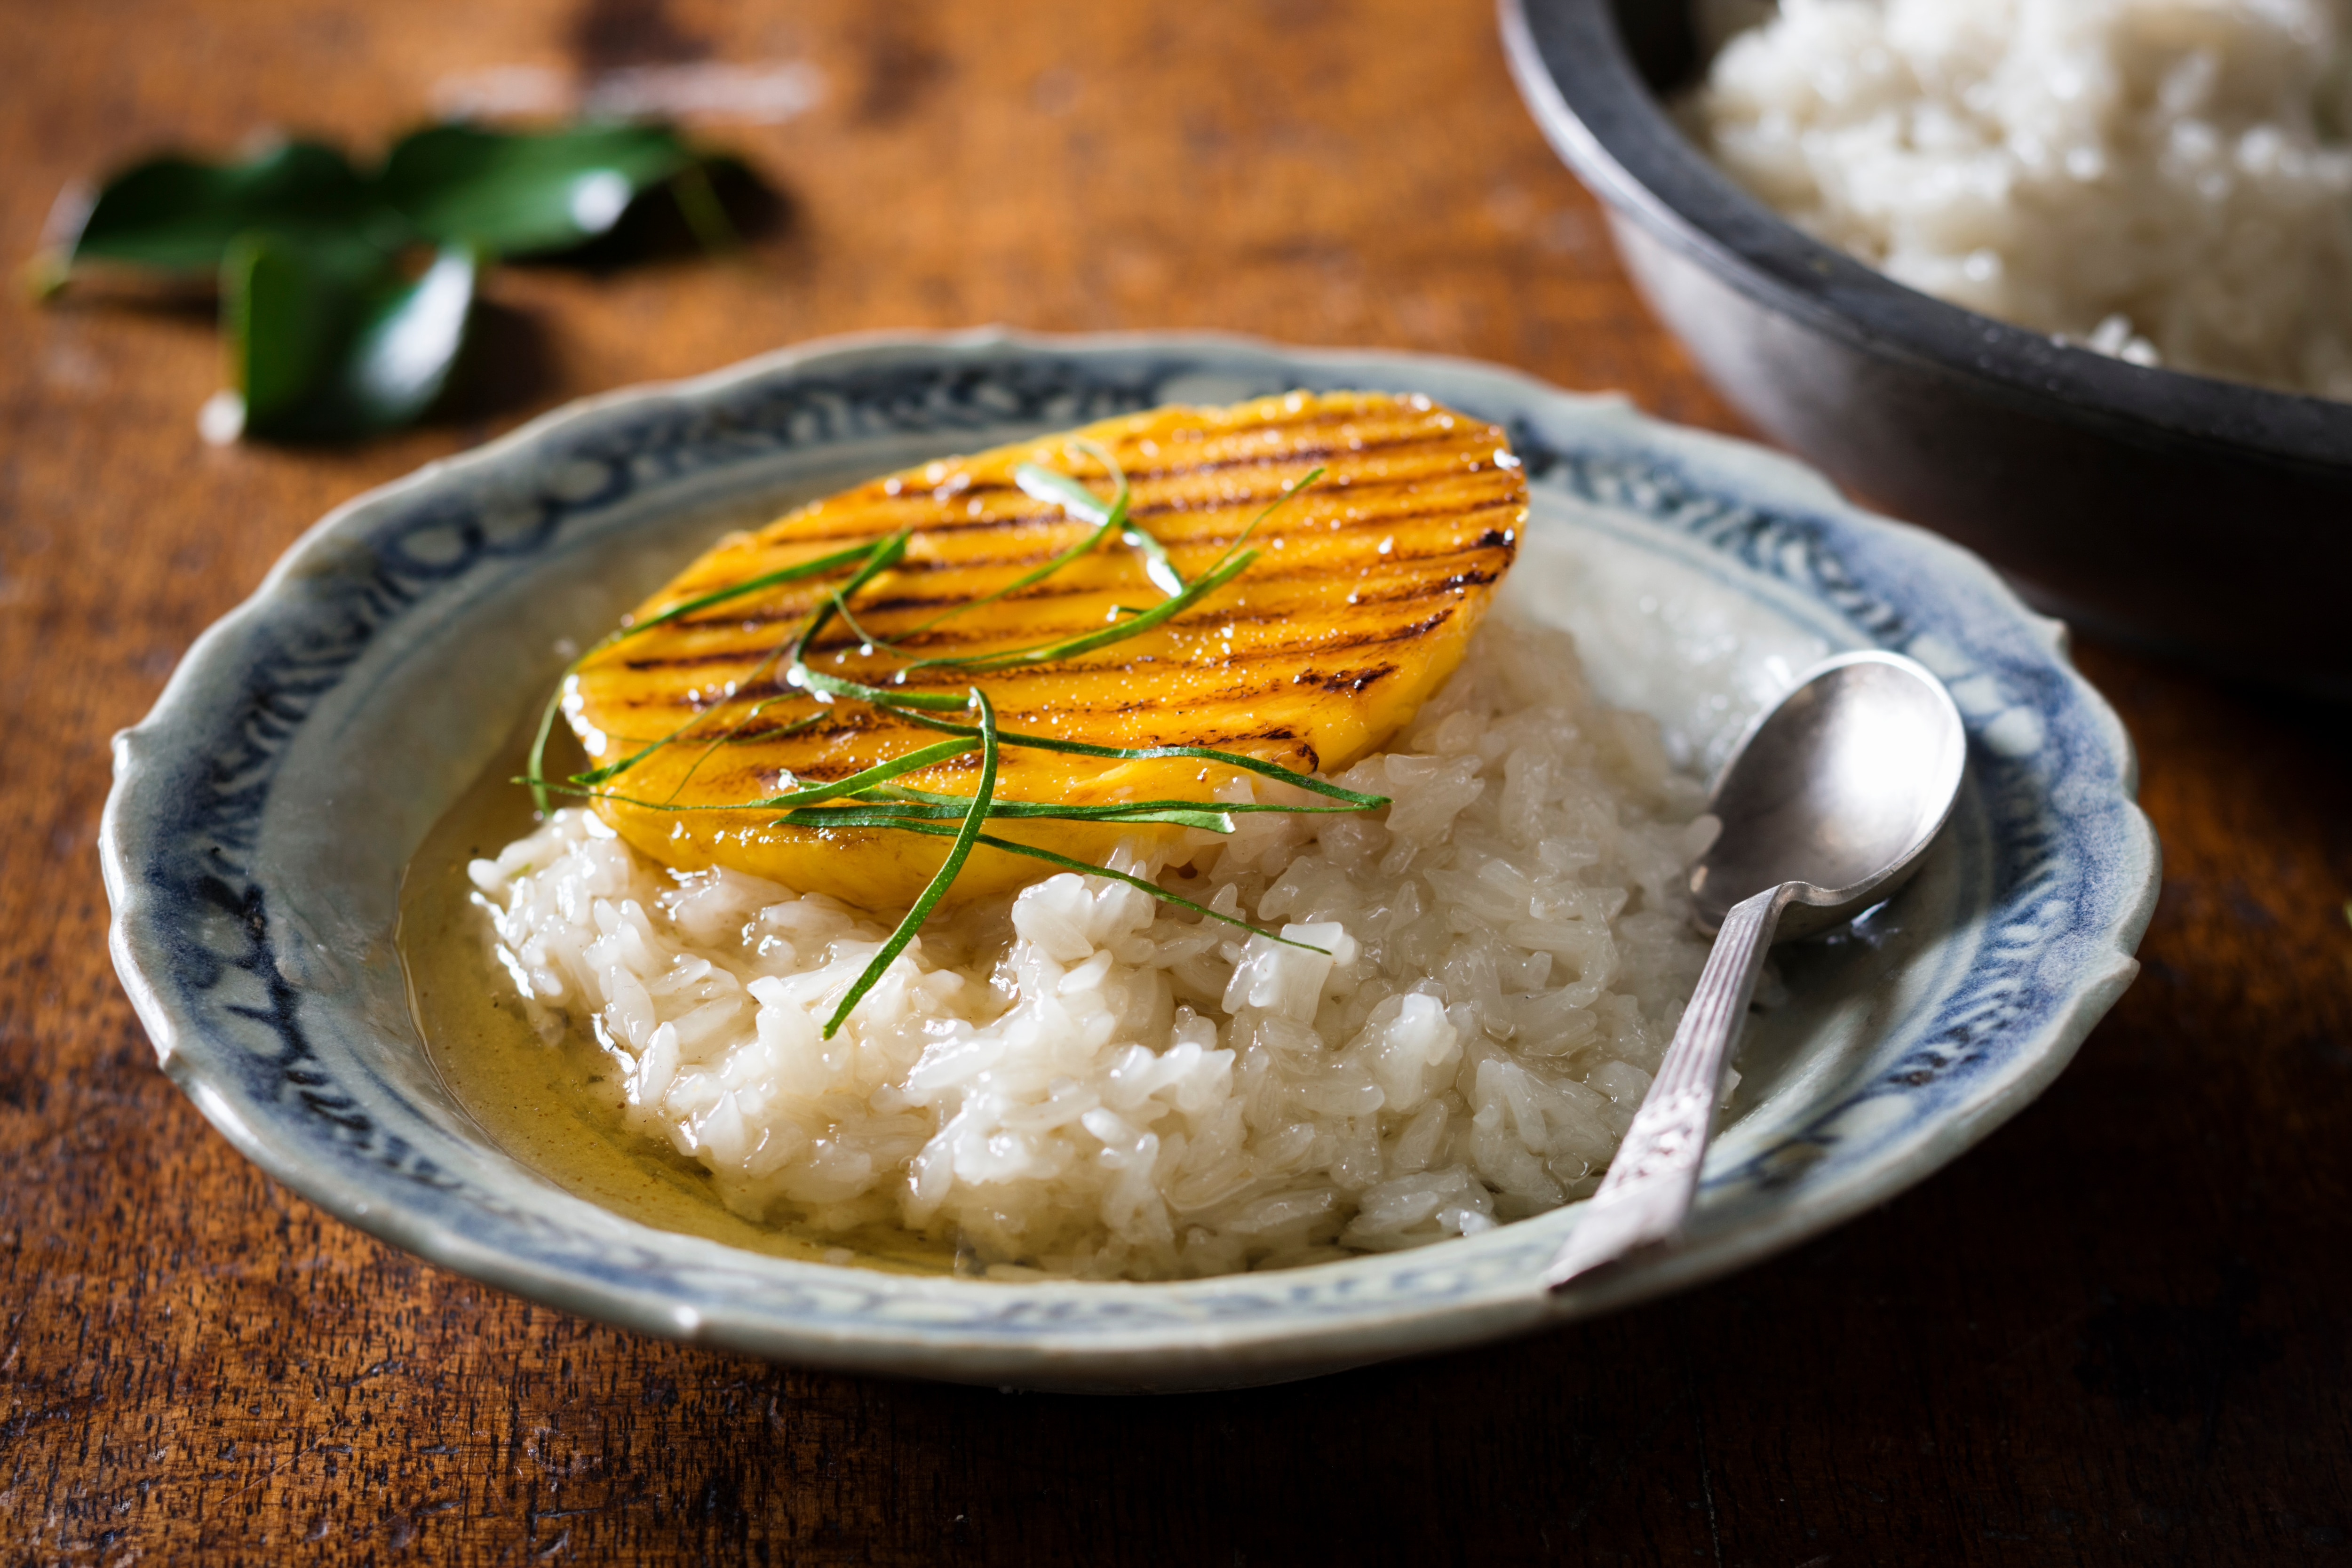 Coconut sticky rice with grilled mango and kaffir lime syrup coconut sticky rice with grilled mango and kaffir lime syrup httpsbsfoodrecipescoconut sticky rice grilled mango and kaffir lime syrup ccuart Gallery